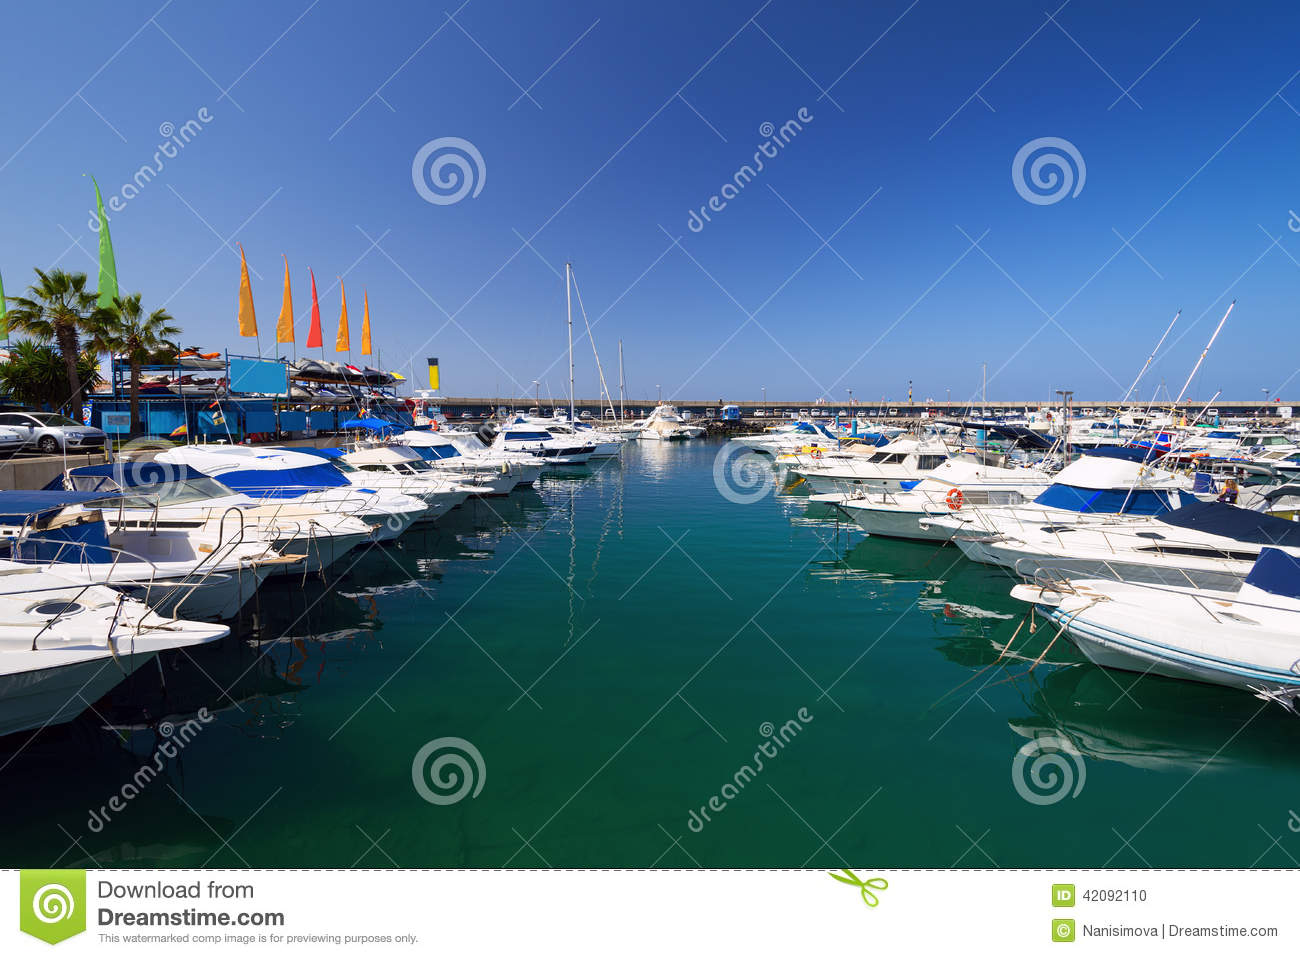 Marina Stock Photo - Image: 57757991